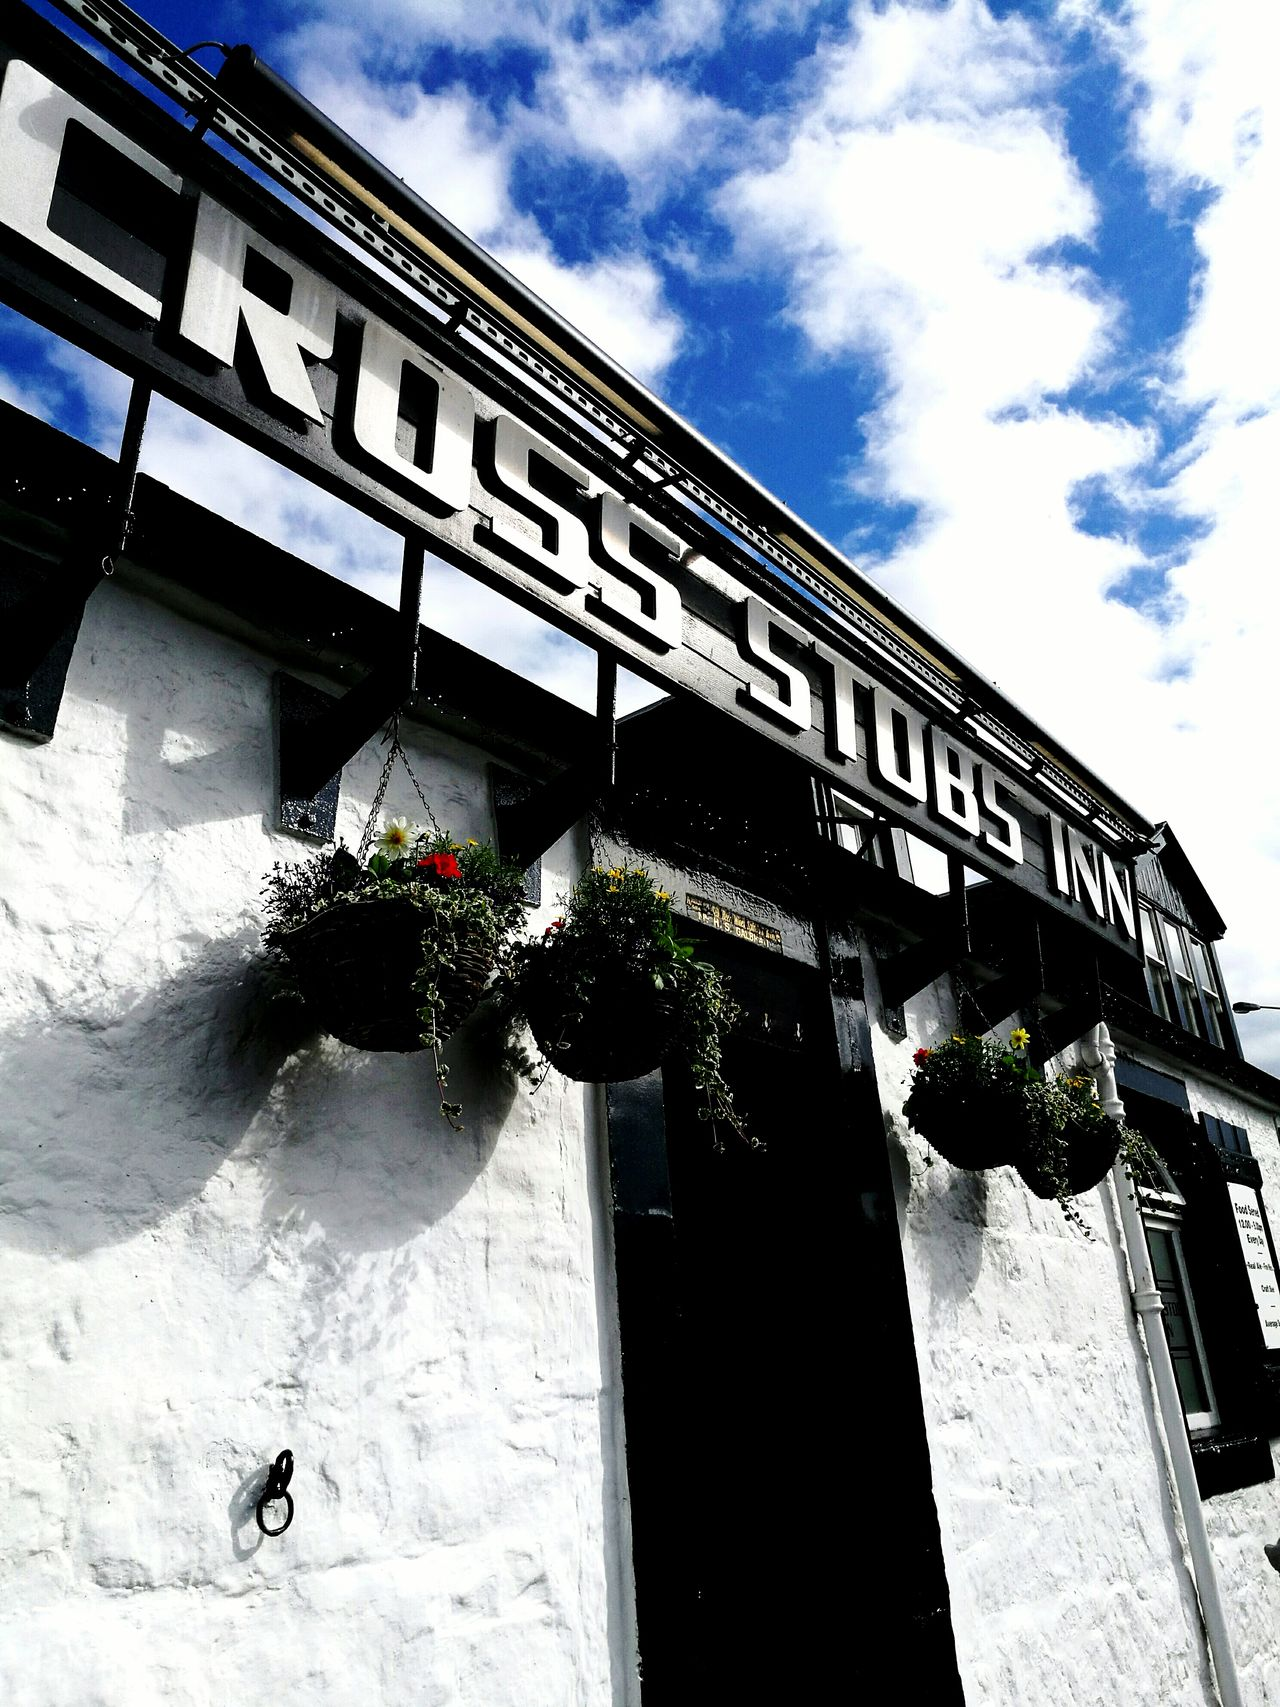 Architecture Built Structure Building Exterior Day Low Angle View Cloud - Sky Outdoors Sky Plant No People Flower Pub Beer Garden. Sunny Day Summer Old Buildings